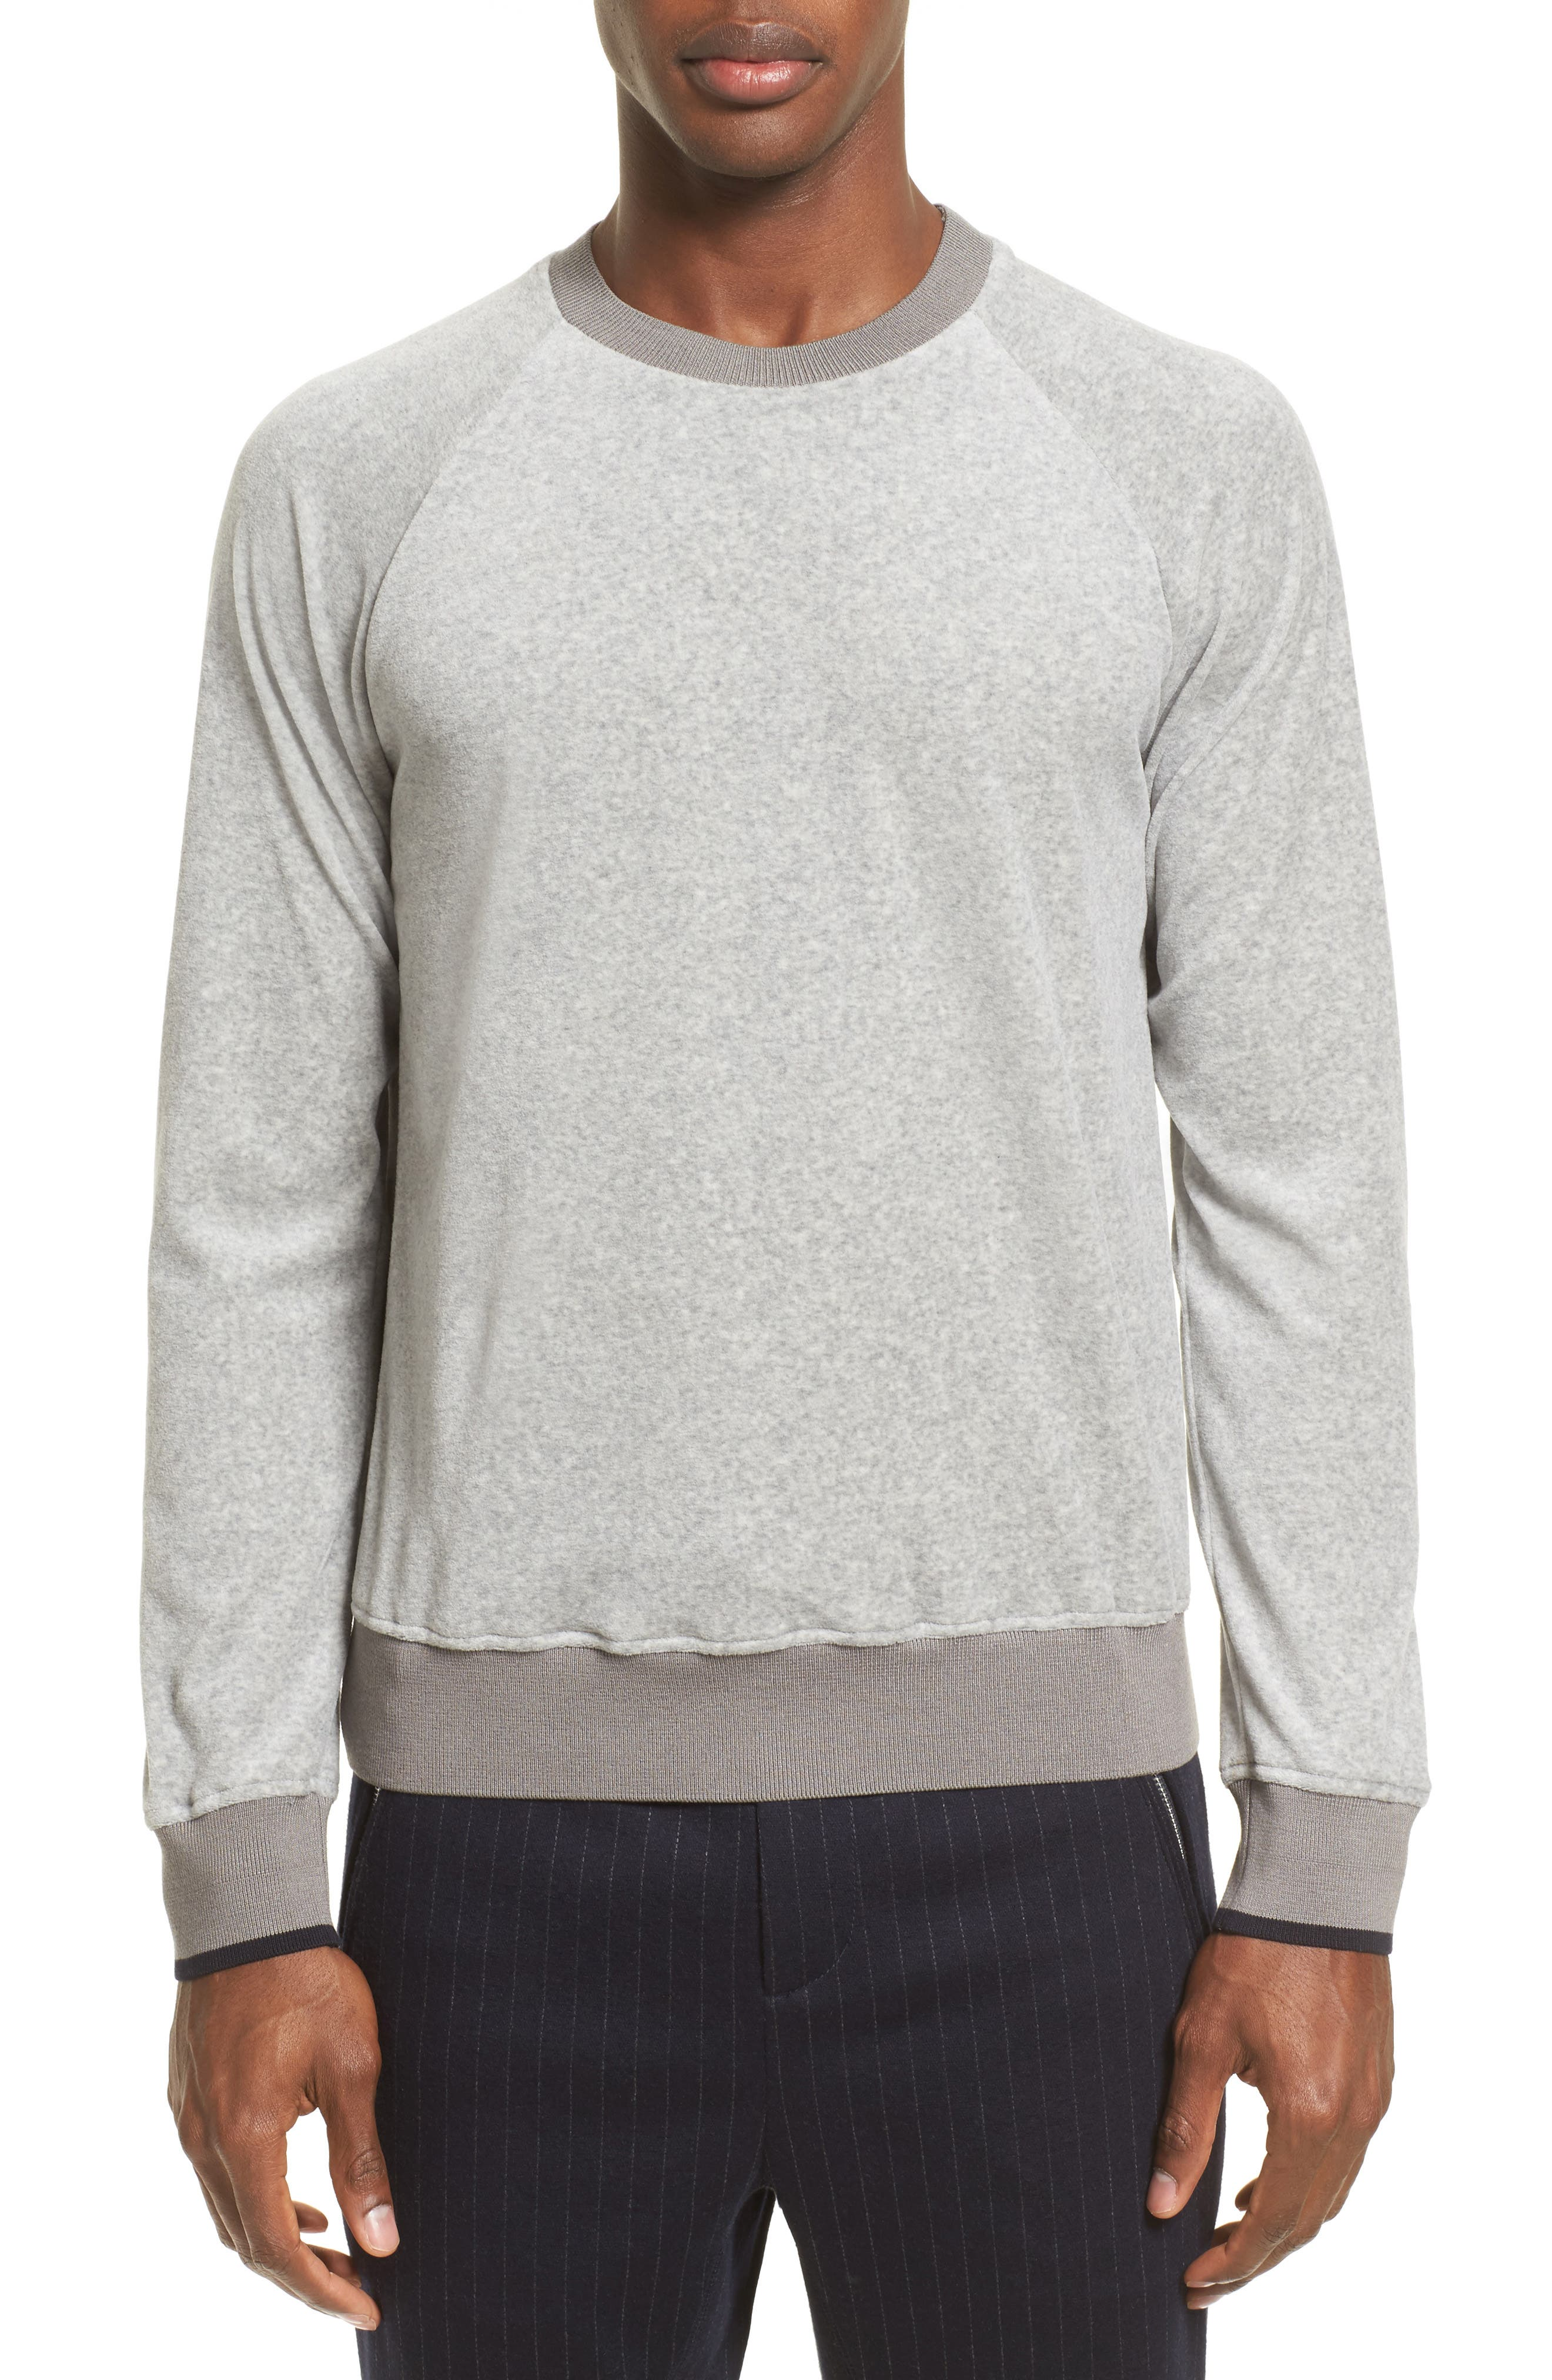 Velour Sweatshirt,                         Main,                         color, Light Grey